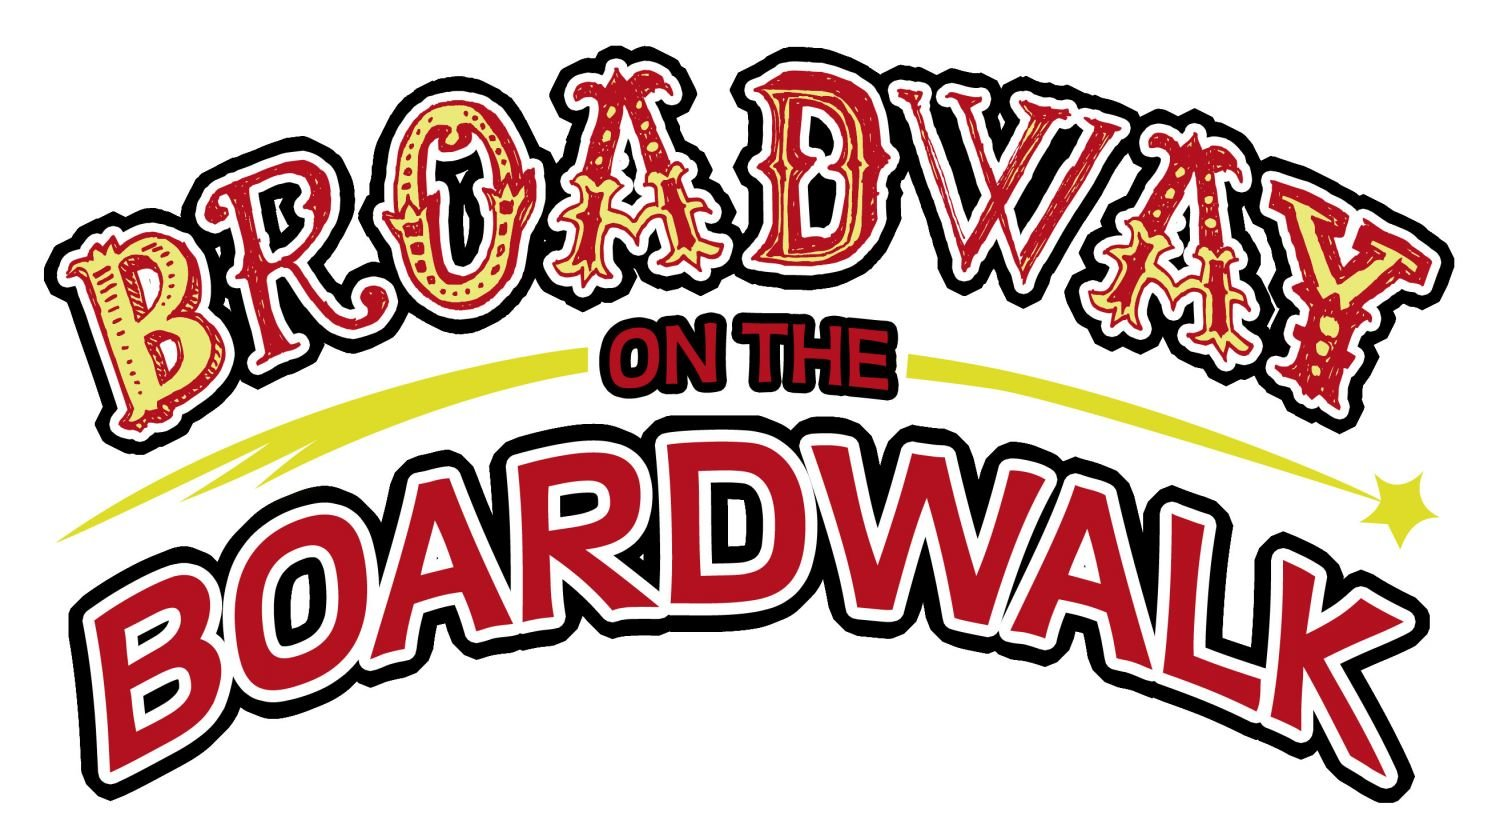 Broadway on the OC Boardwalk X presented by the Ocean City Theatre Company